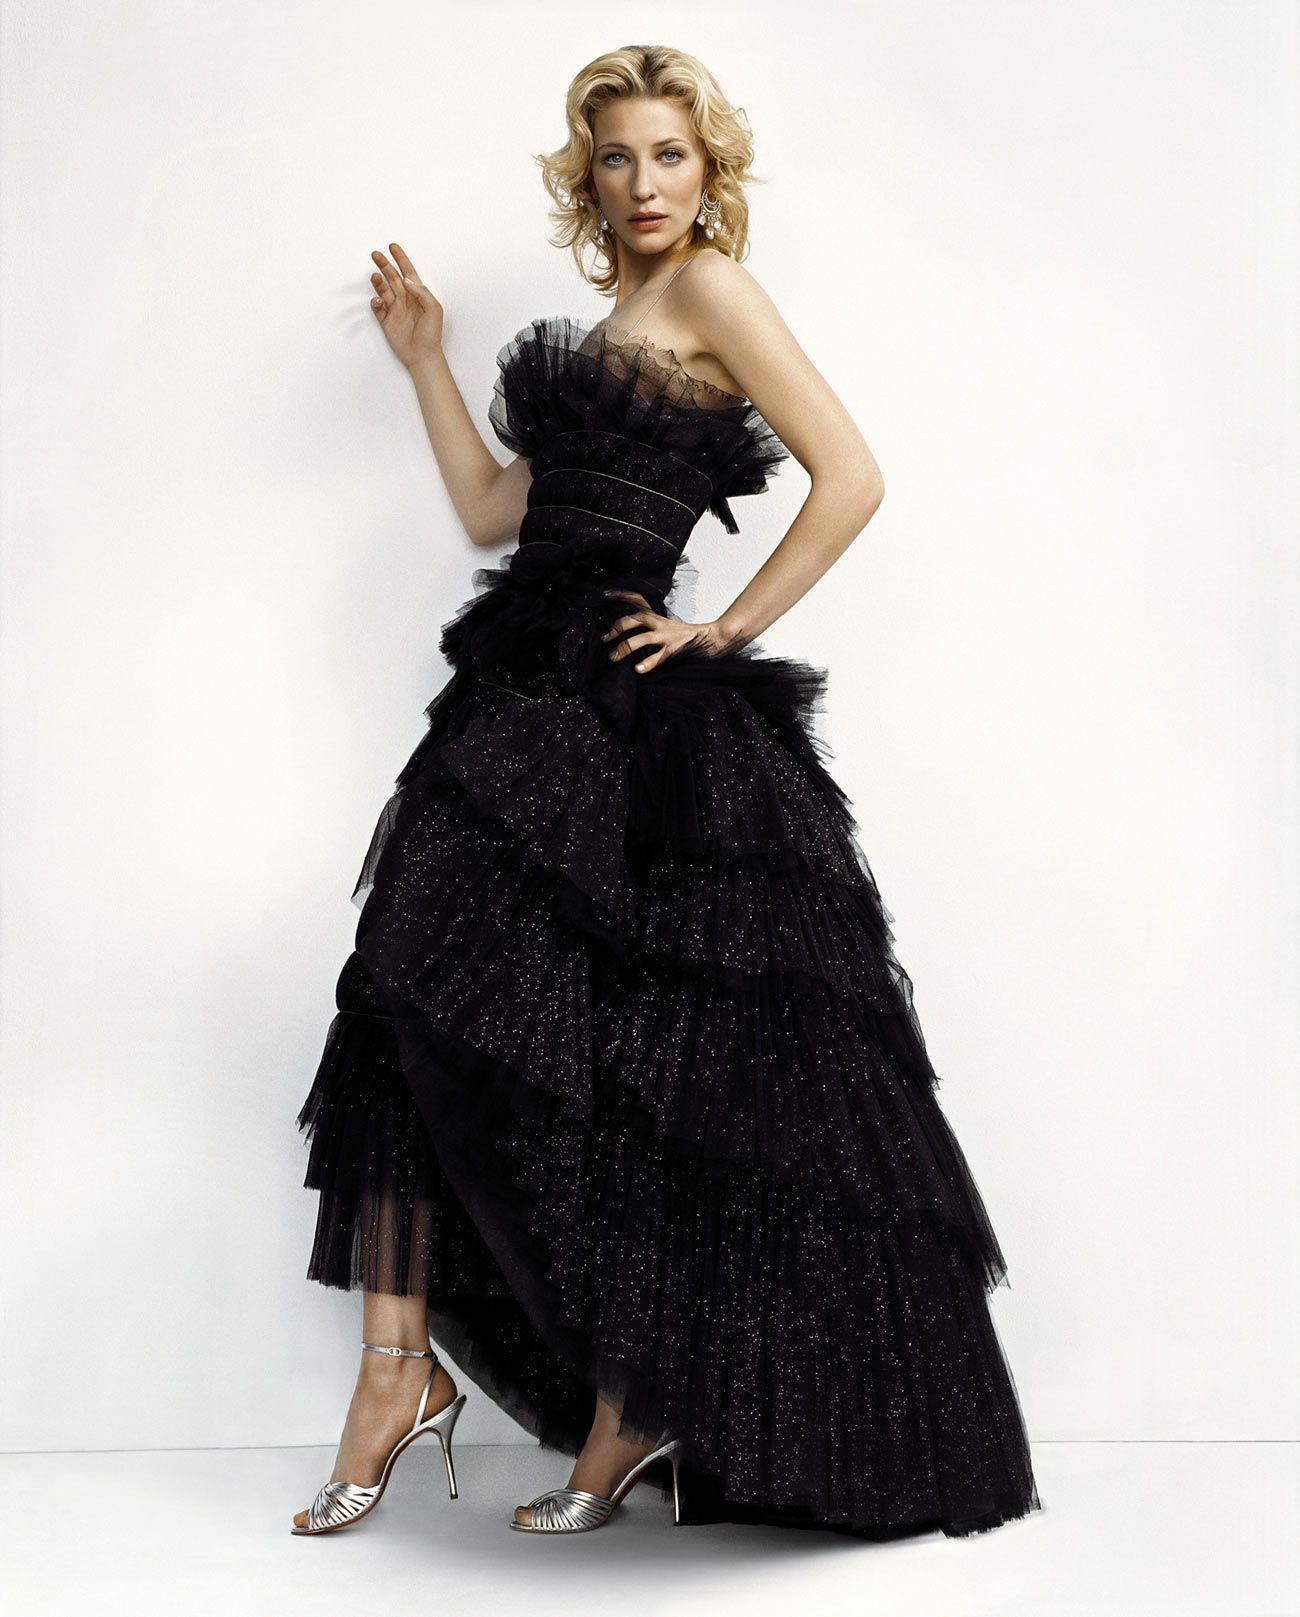 Pin By Gabriela Urbina On Cate Blanchett Ball Gowns Unique Dresses Dresses [ 1617 x 1300 Pixel ]